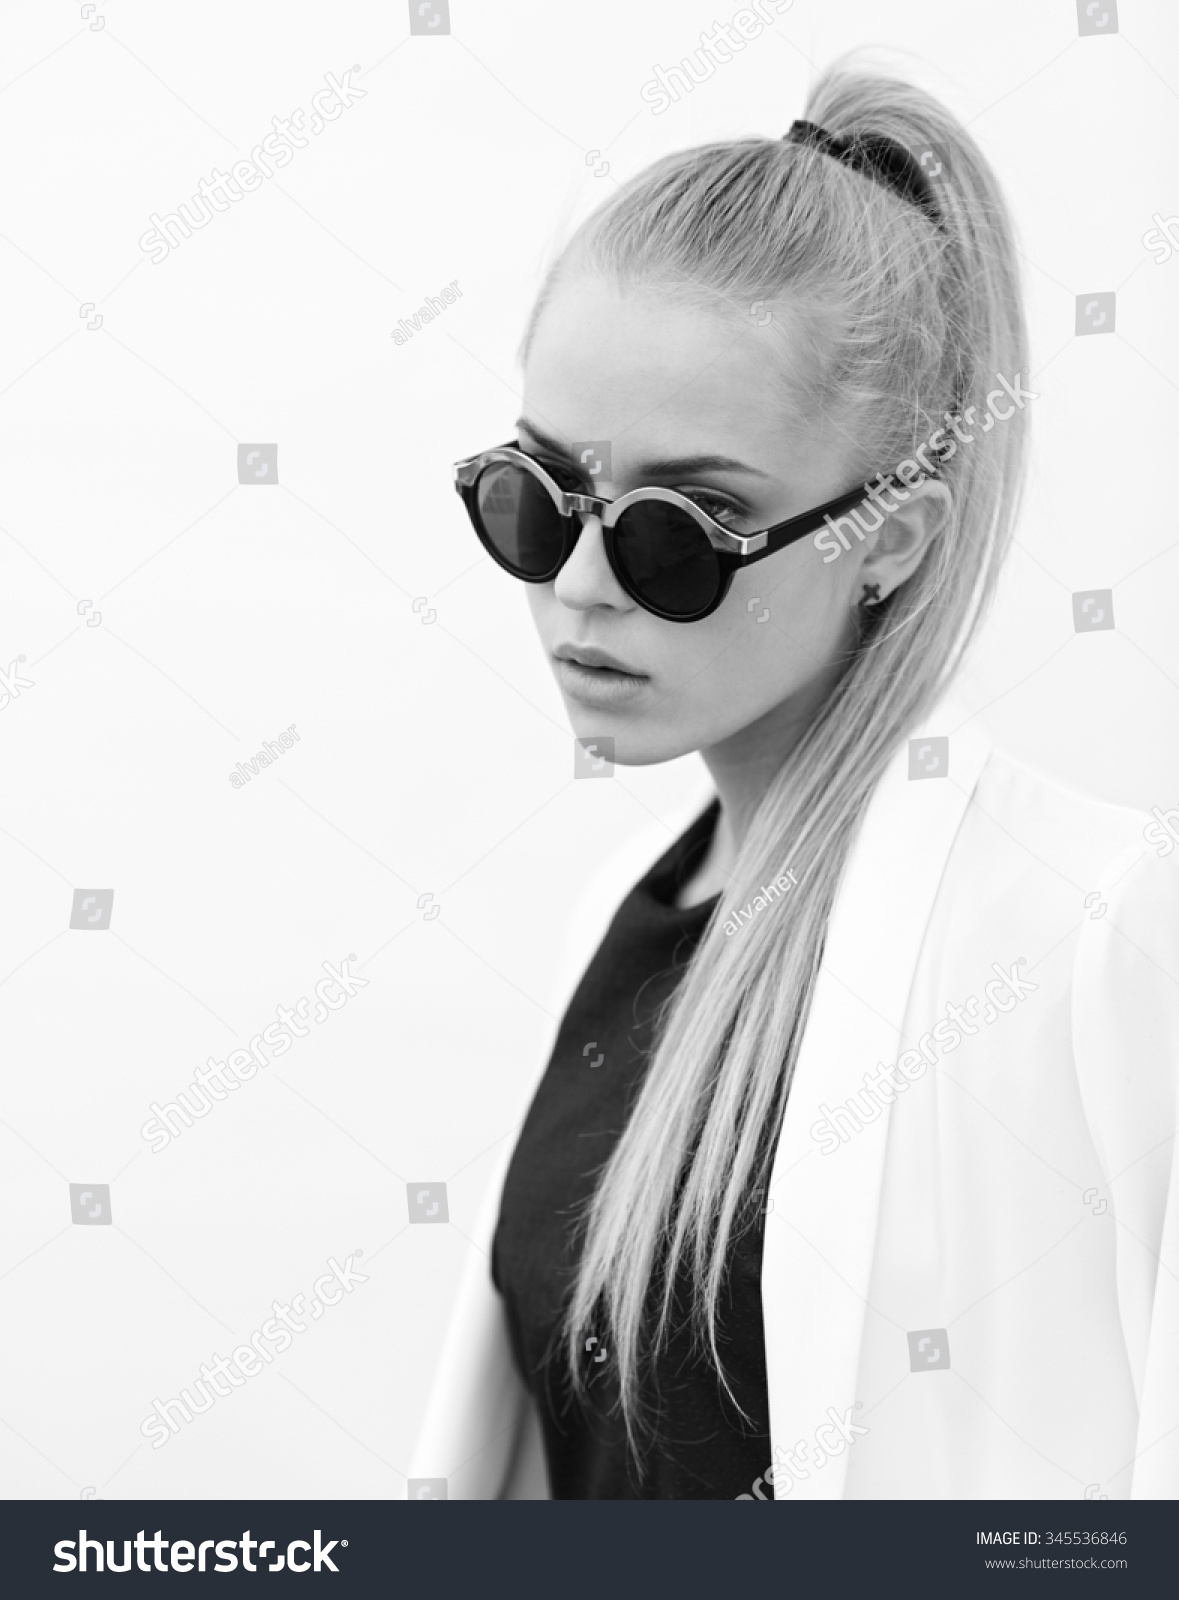 Beautiful blonde girl with sunglasses in black and white